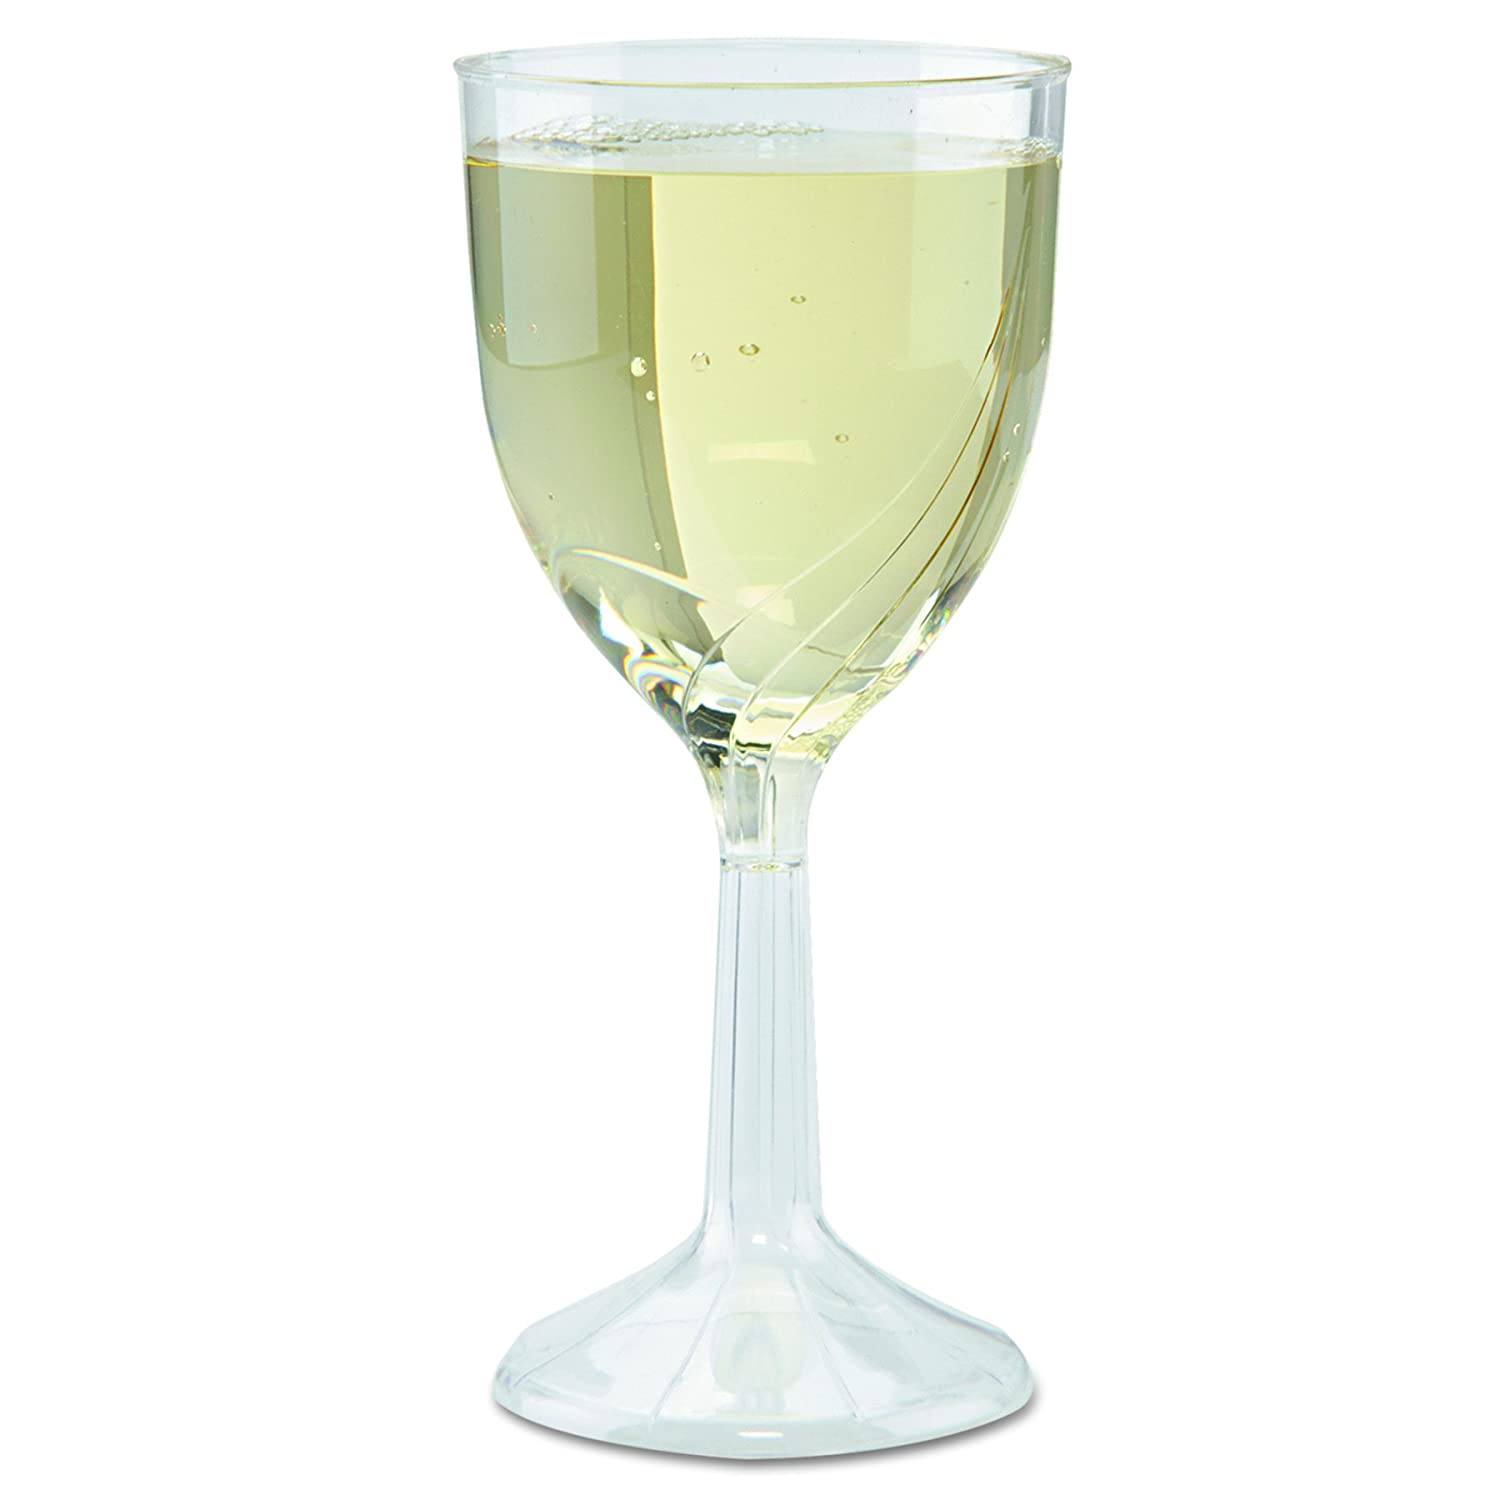 WNA CWSWN6 2021 spring and summer new Classicware One-Piece Wine High quality new Glasses 8 oz. 6 Clear